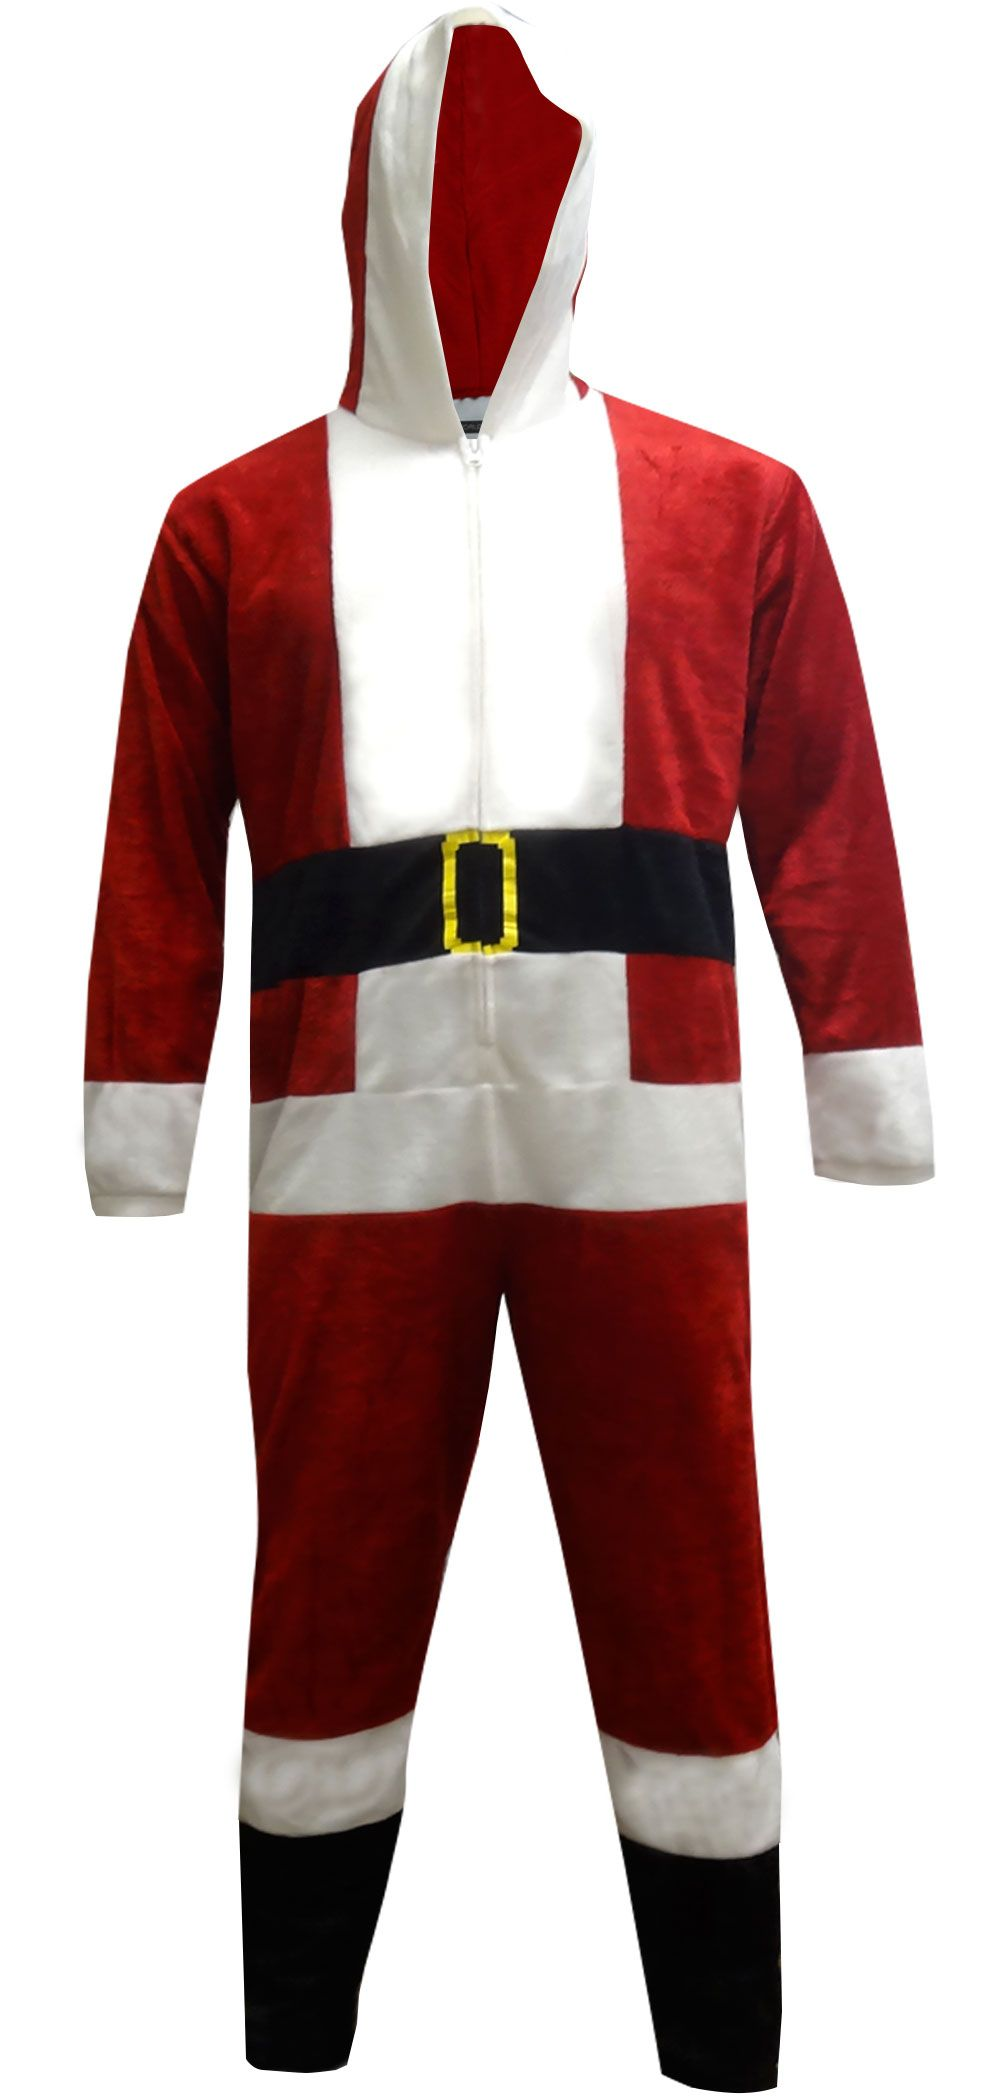 WebUndies.com Dress Like Santa Fleece Men s One Piece Hooded Pajama ... 07fc1c9d6